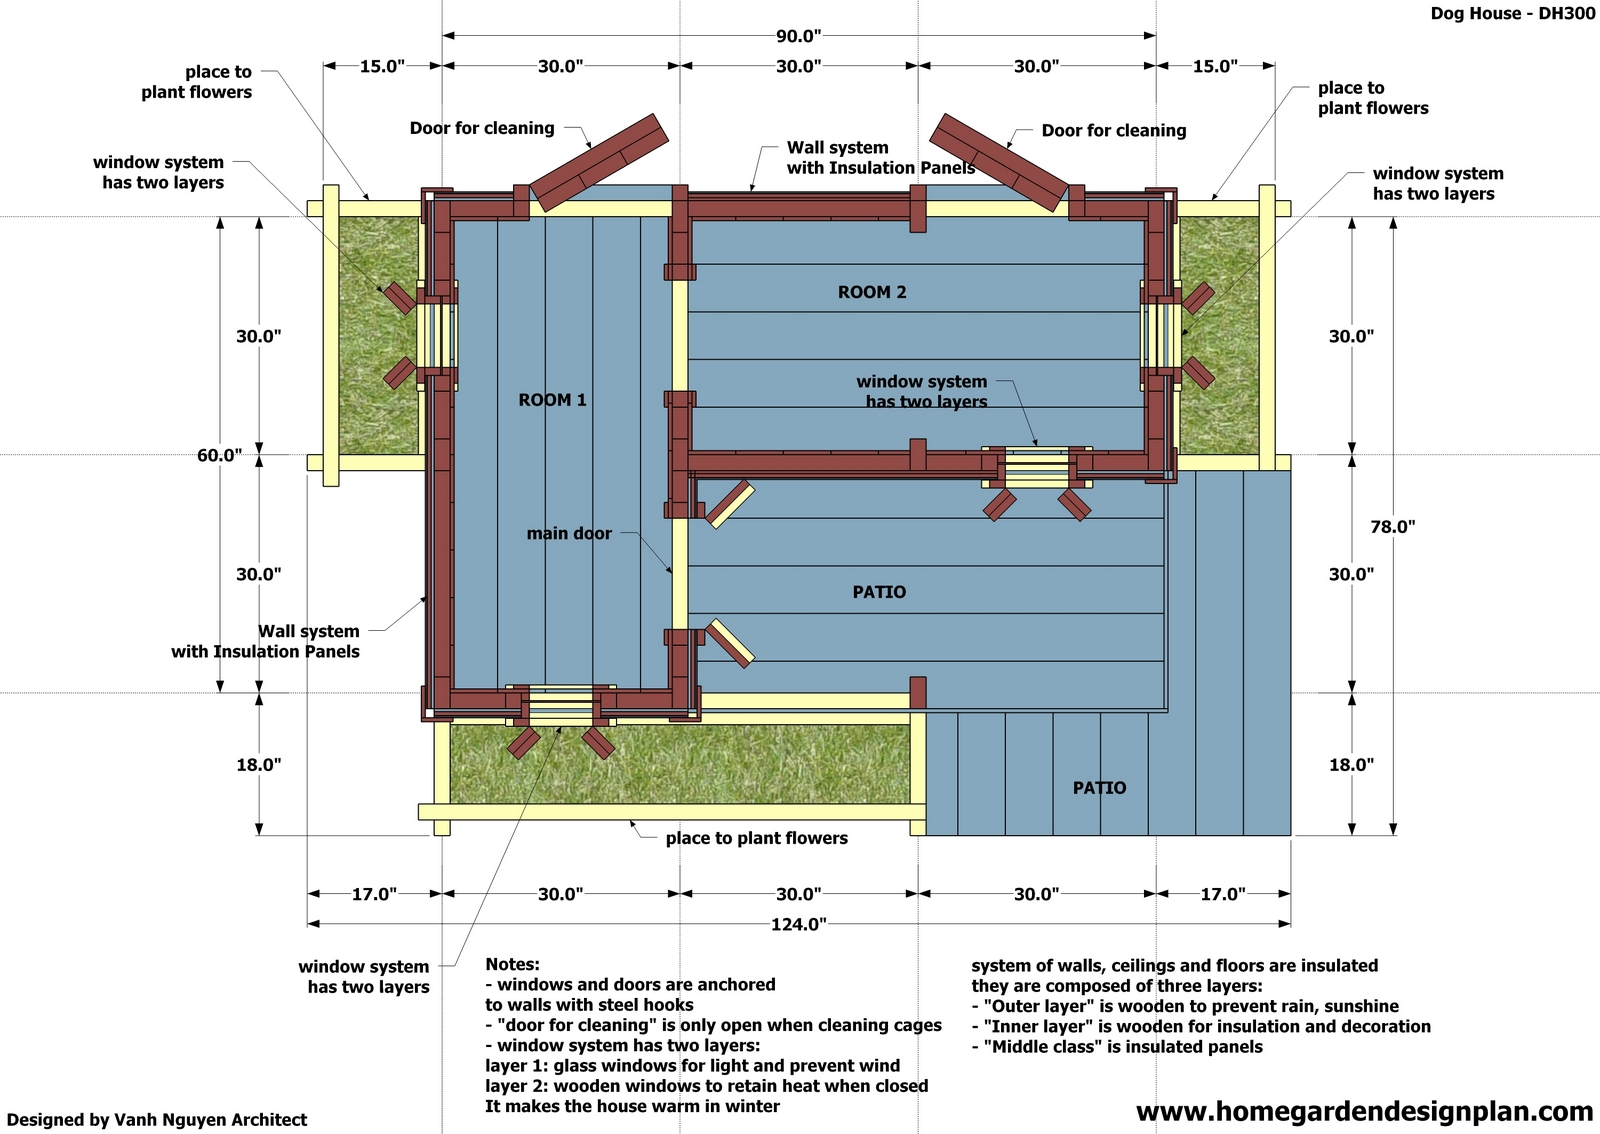 Free easy large dog house plans for Insulated dog house plans pdf